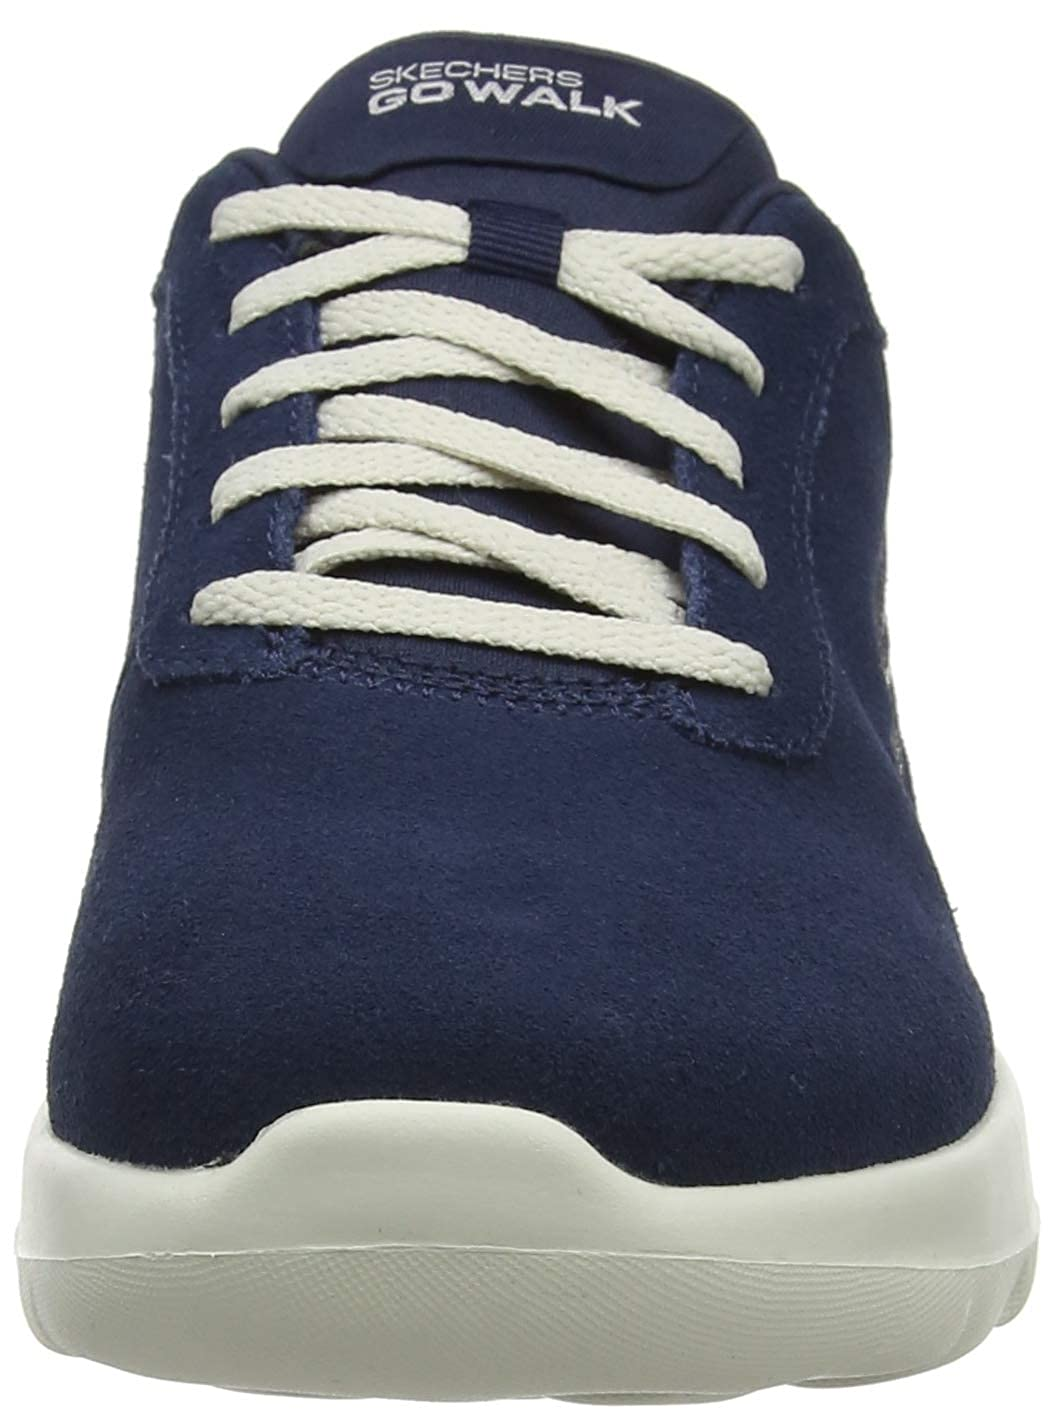 Skechers Damen Go Walk Joy Sneaker Blau (Navy Nvy)